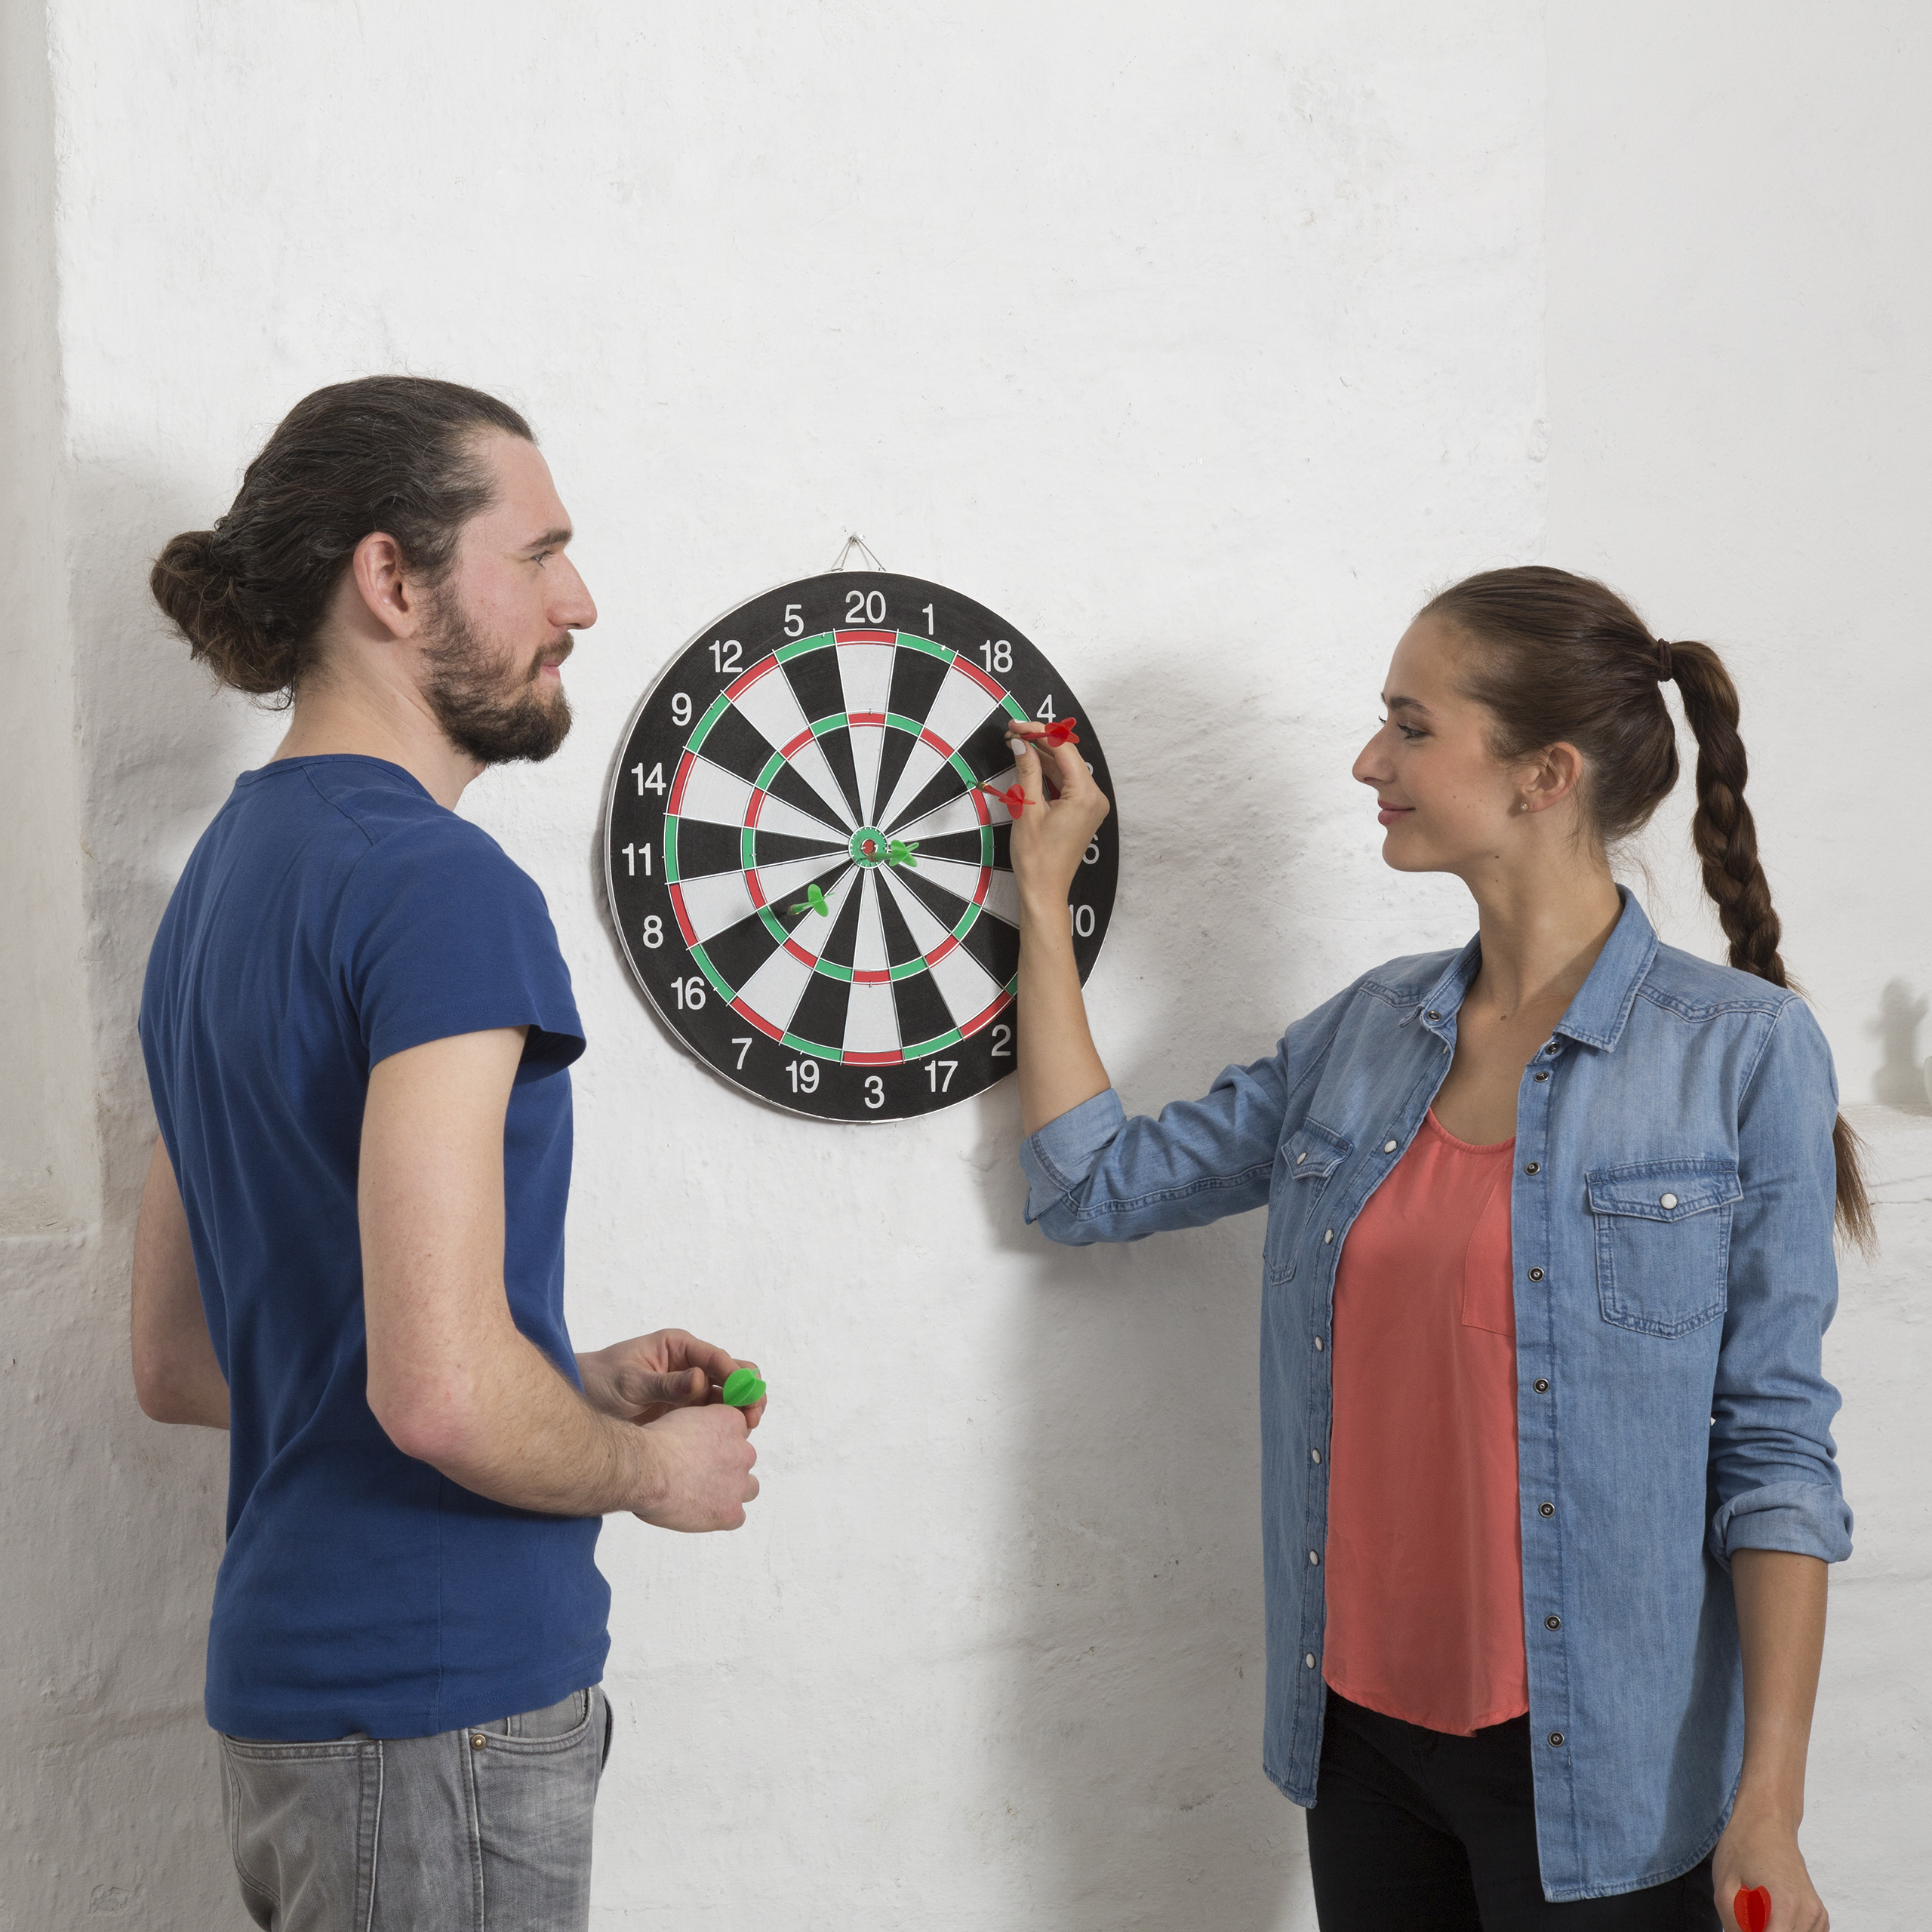 dartscheibe soft darts 42 cm darboard dartgame wand mit standfu schwarz wei ebay. Black Bedroom Furniture Sets. Home Design Ideas